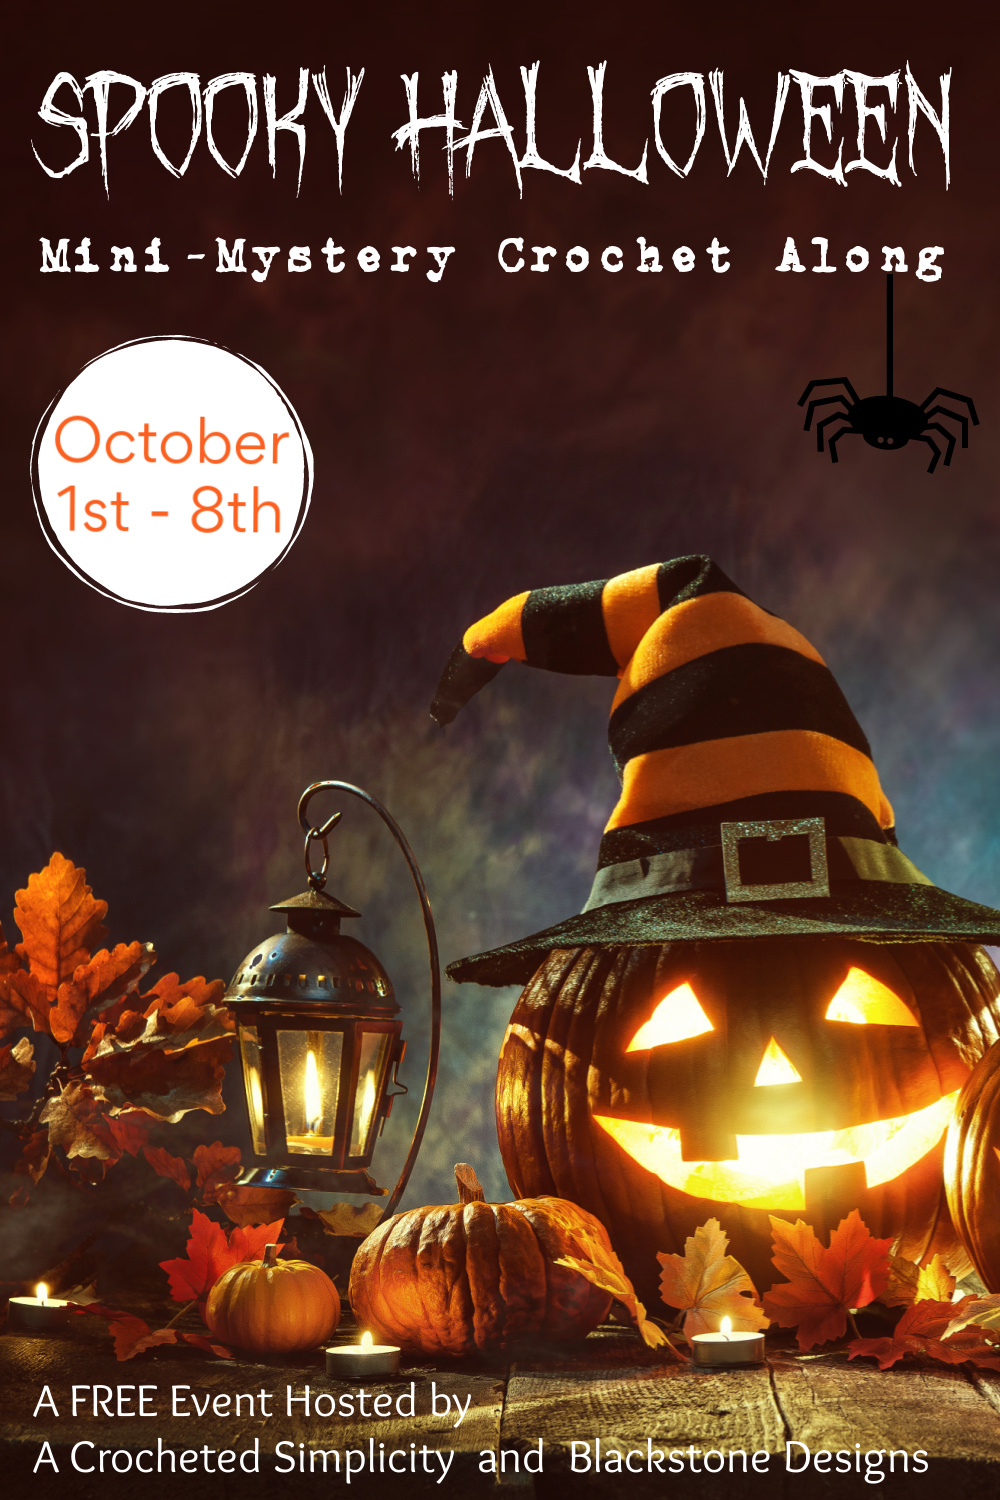 Join us for the Spooky Halloween Mini-Mystery Crochet Along - A FREE Crochet Event Hosted By A Crocheted Simplicity and Blackstone Designs